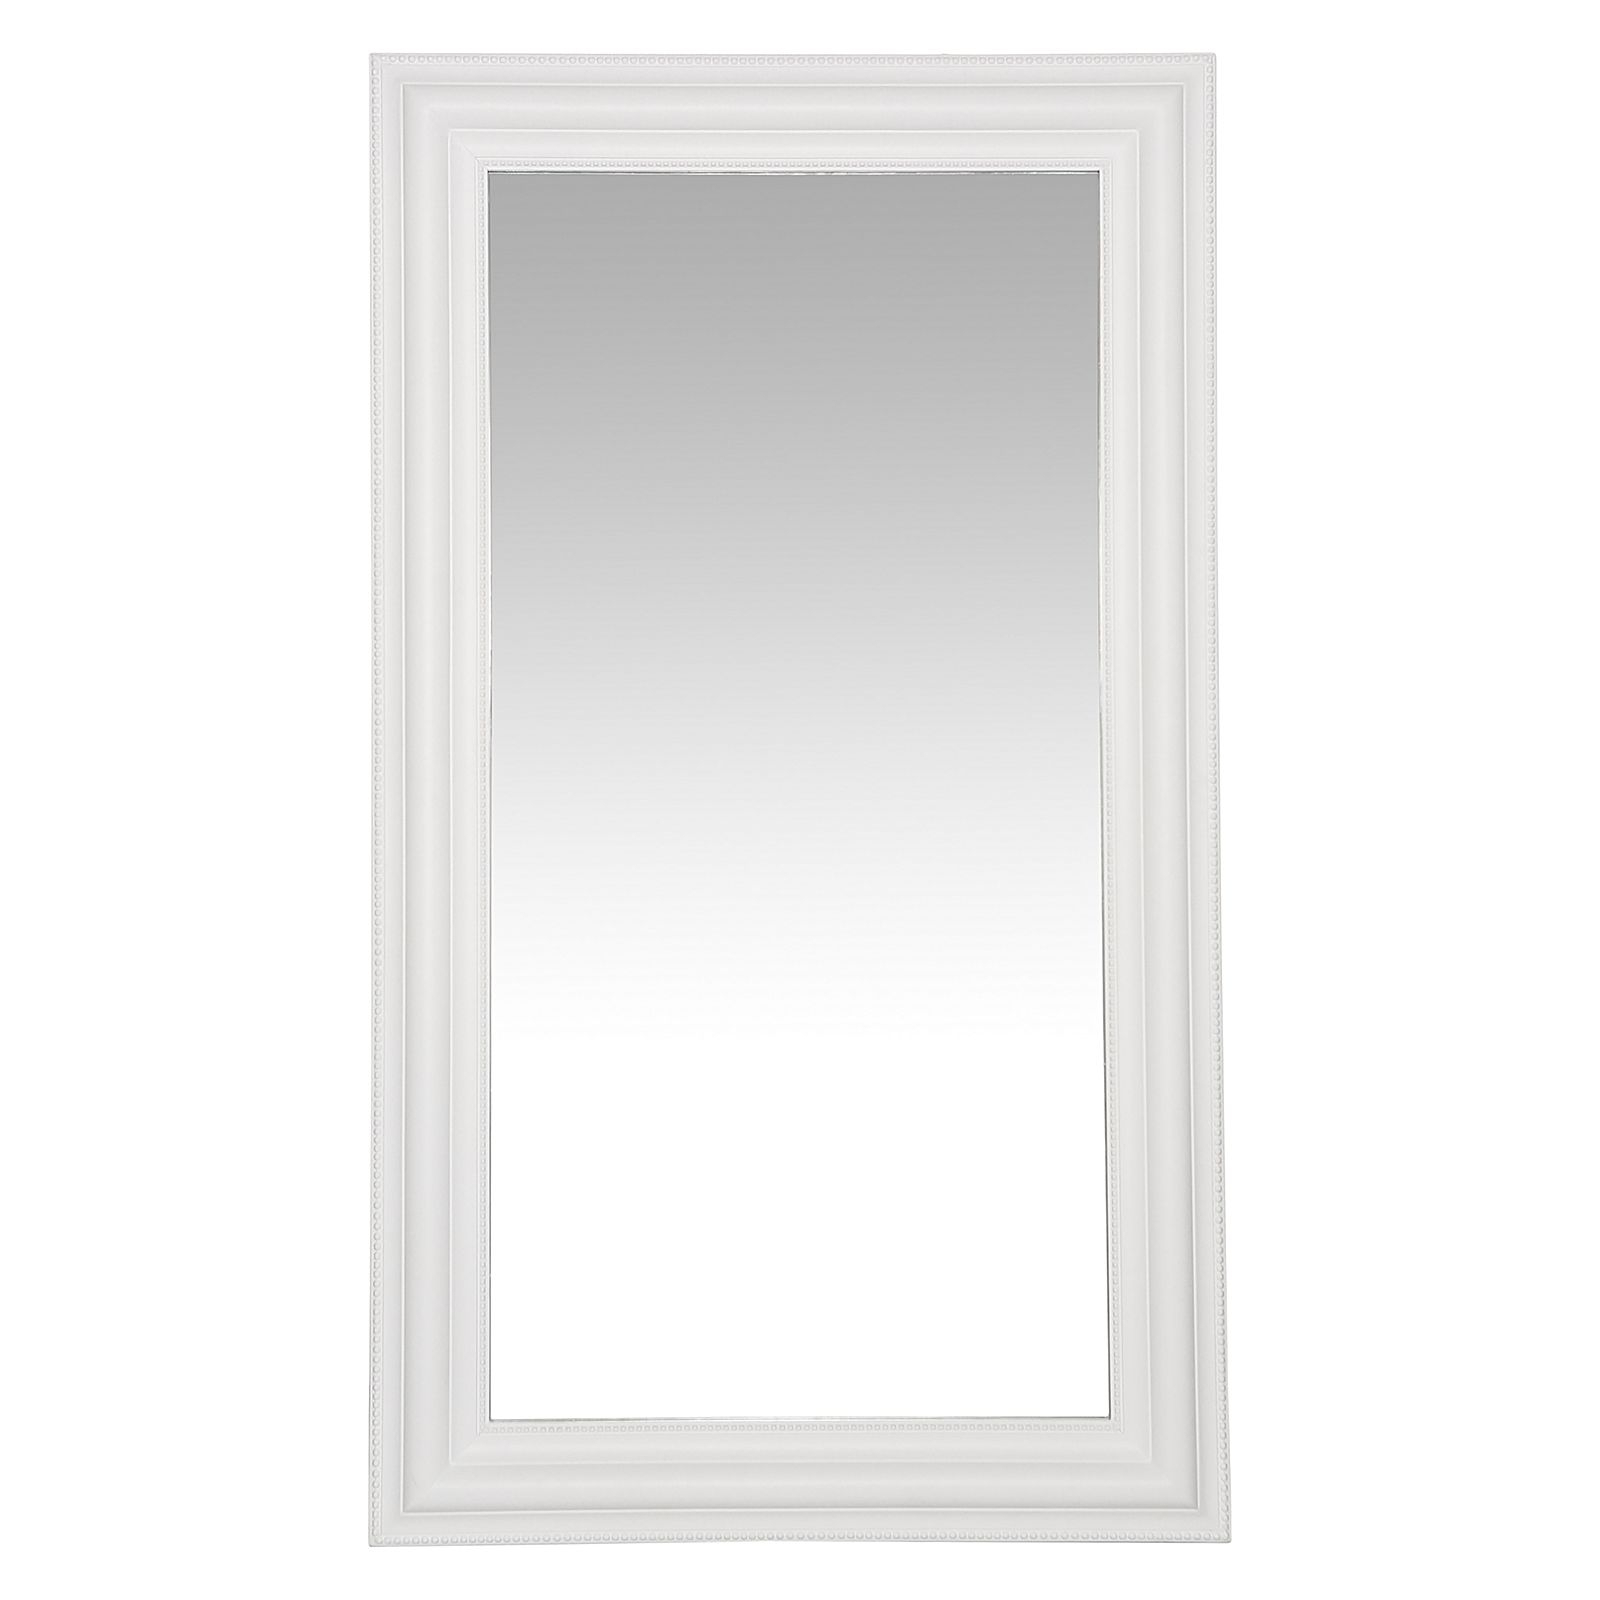 Sophie Wall Mirror Within Traditional Square Glass Wall Mirrors (View 11 of 30)